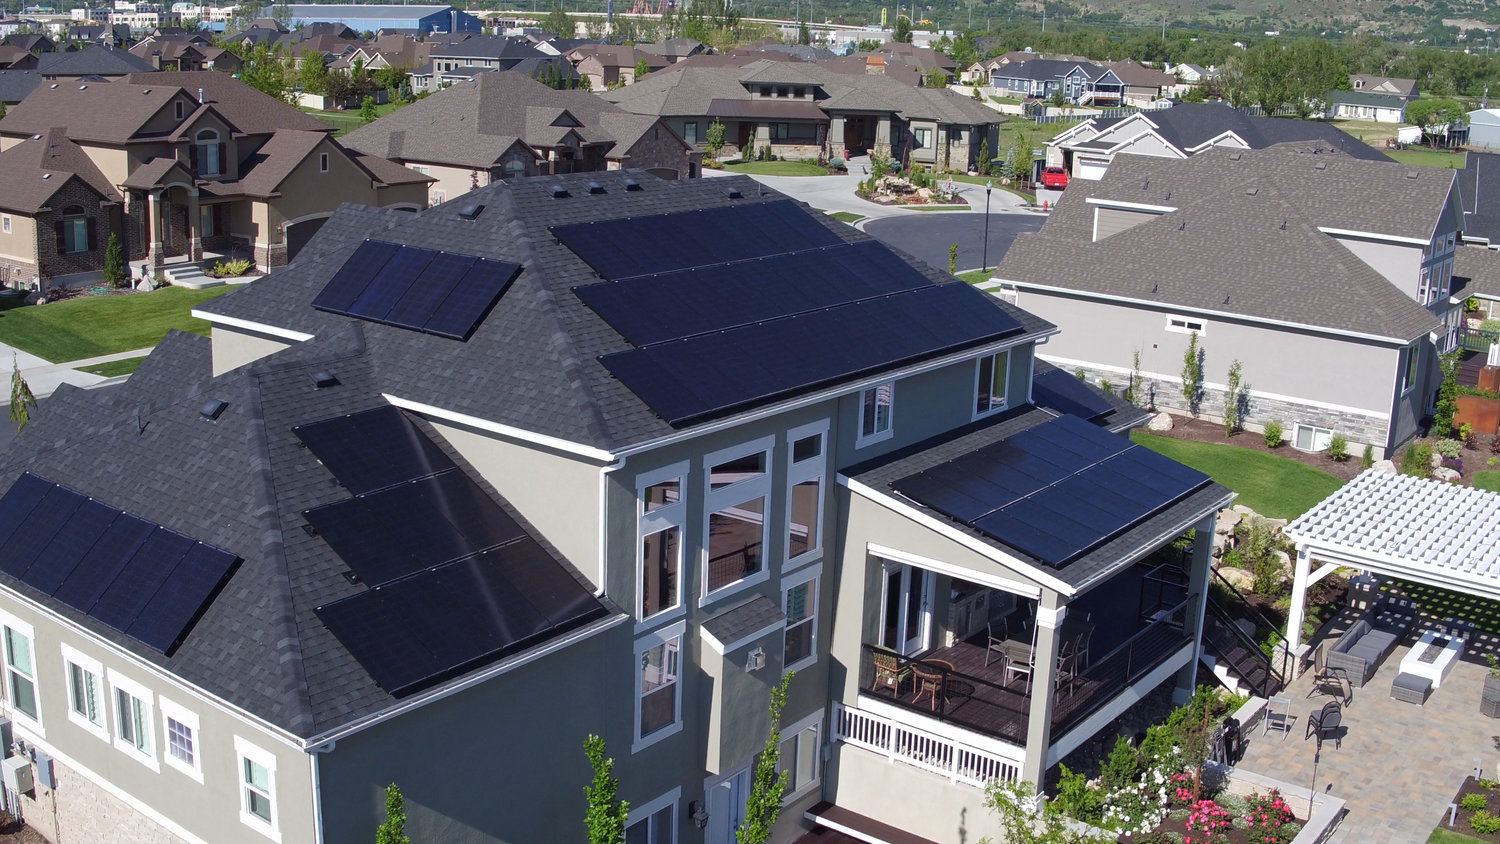 Auric Solar Power Provider How Does Work In A Residential Home Headerstill Image